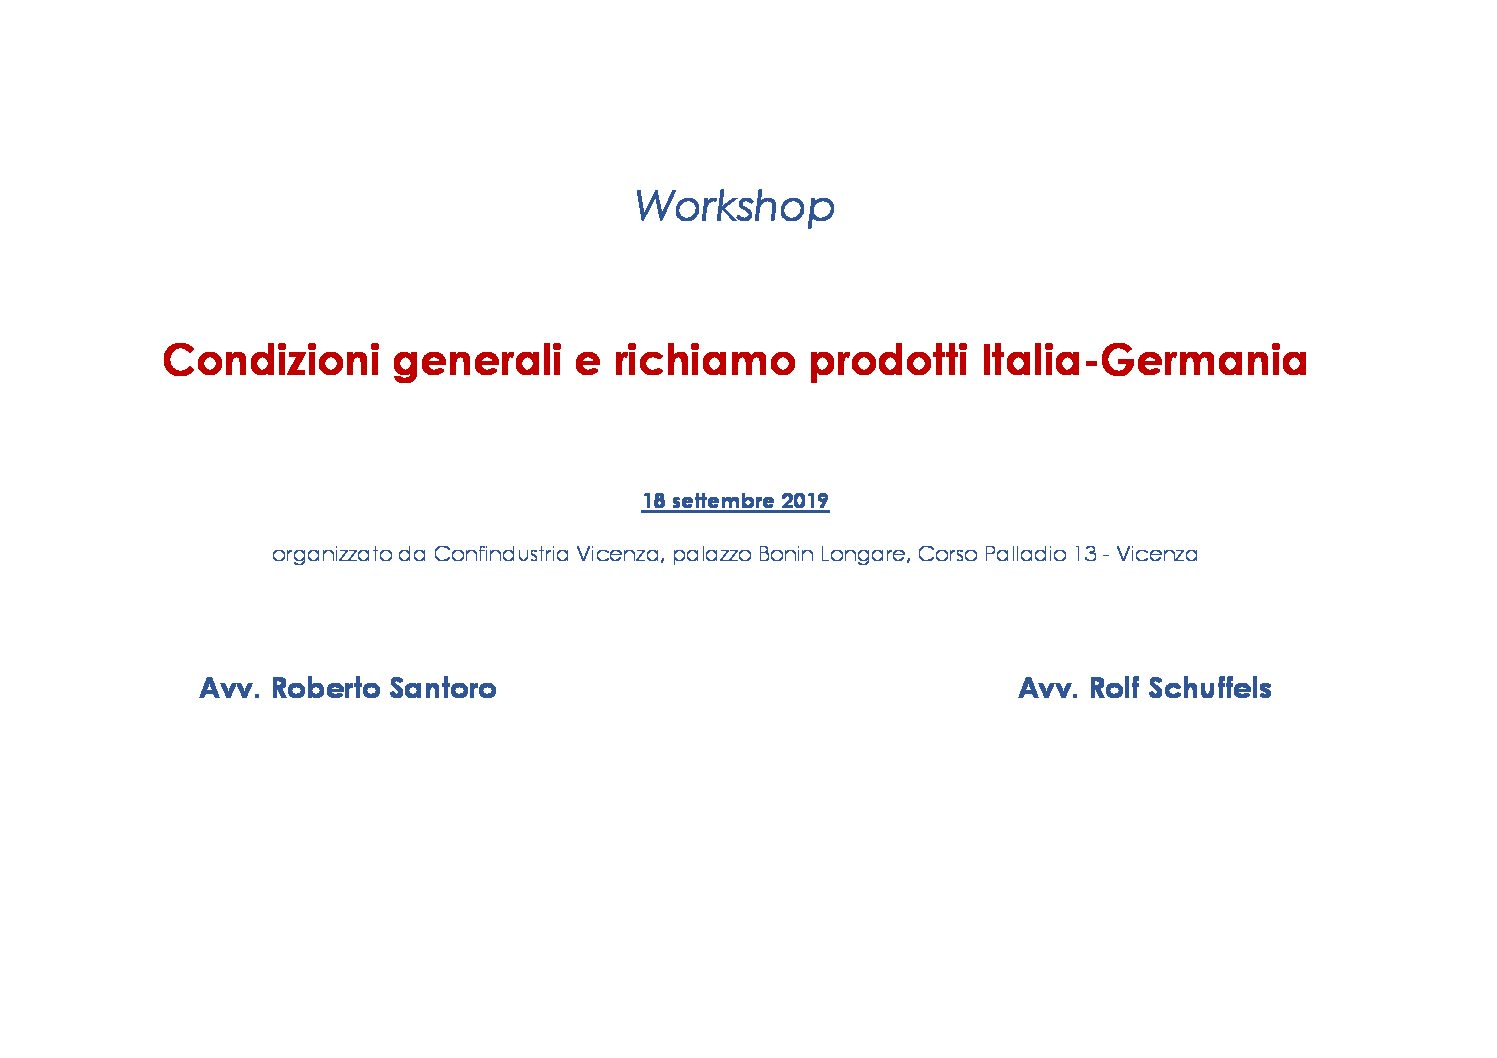 Italy and Germany: general conditions of sale and defective product recall